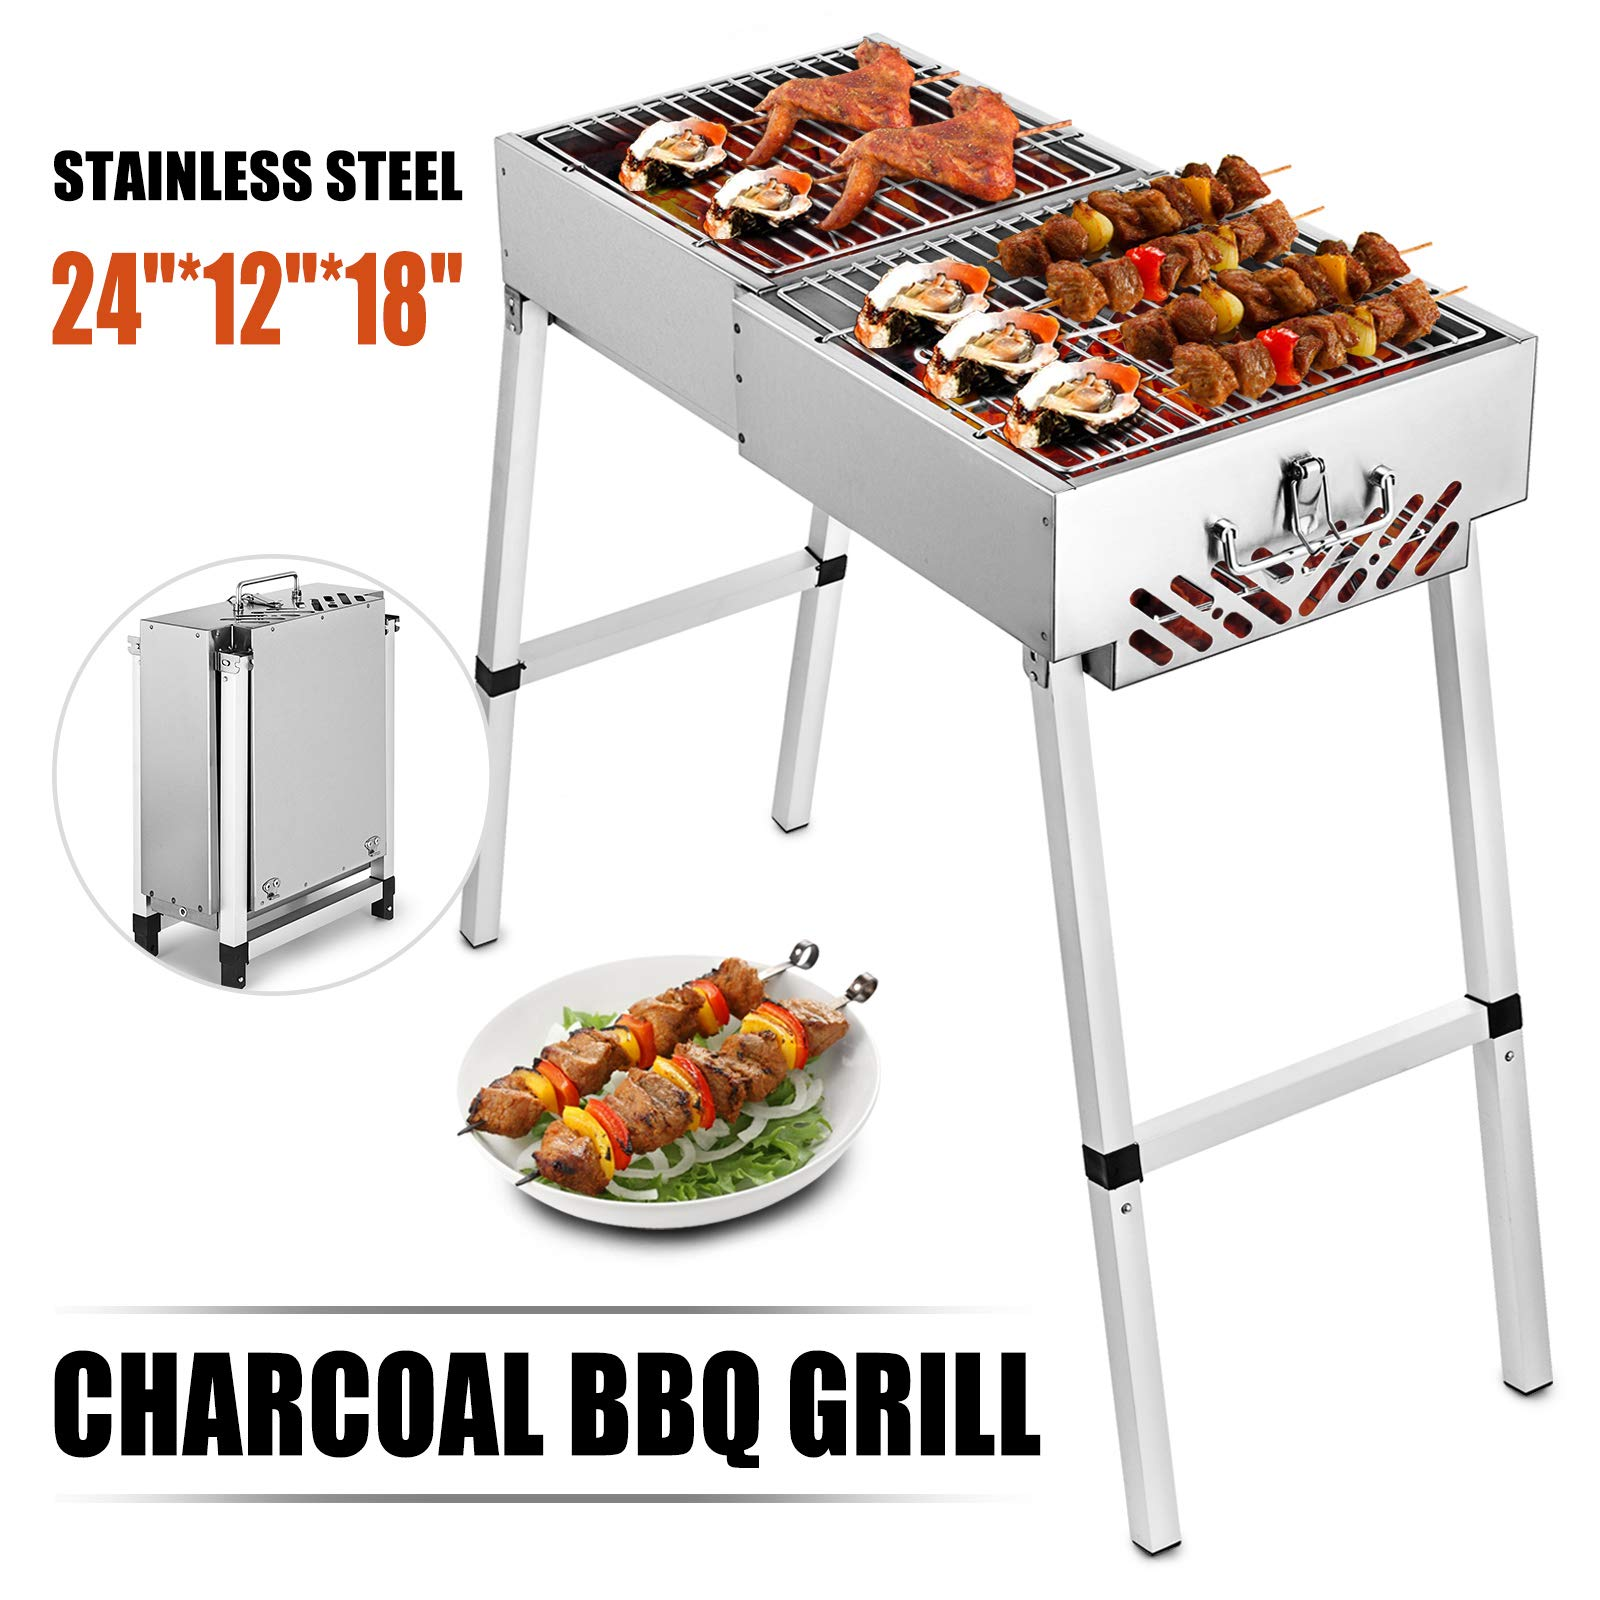 Happybuy Folded Portable Charcoal BBQ Grill 24x12 inches Outdoor Barbecue Charcoal Stainless Steel Kebab Grill Folding Grill Portable Grill Perfect for Camping